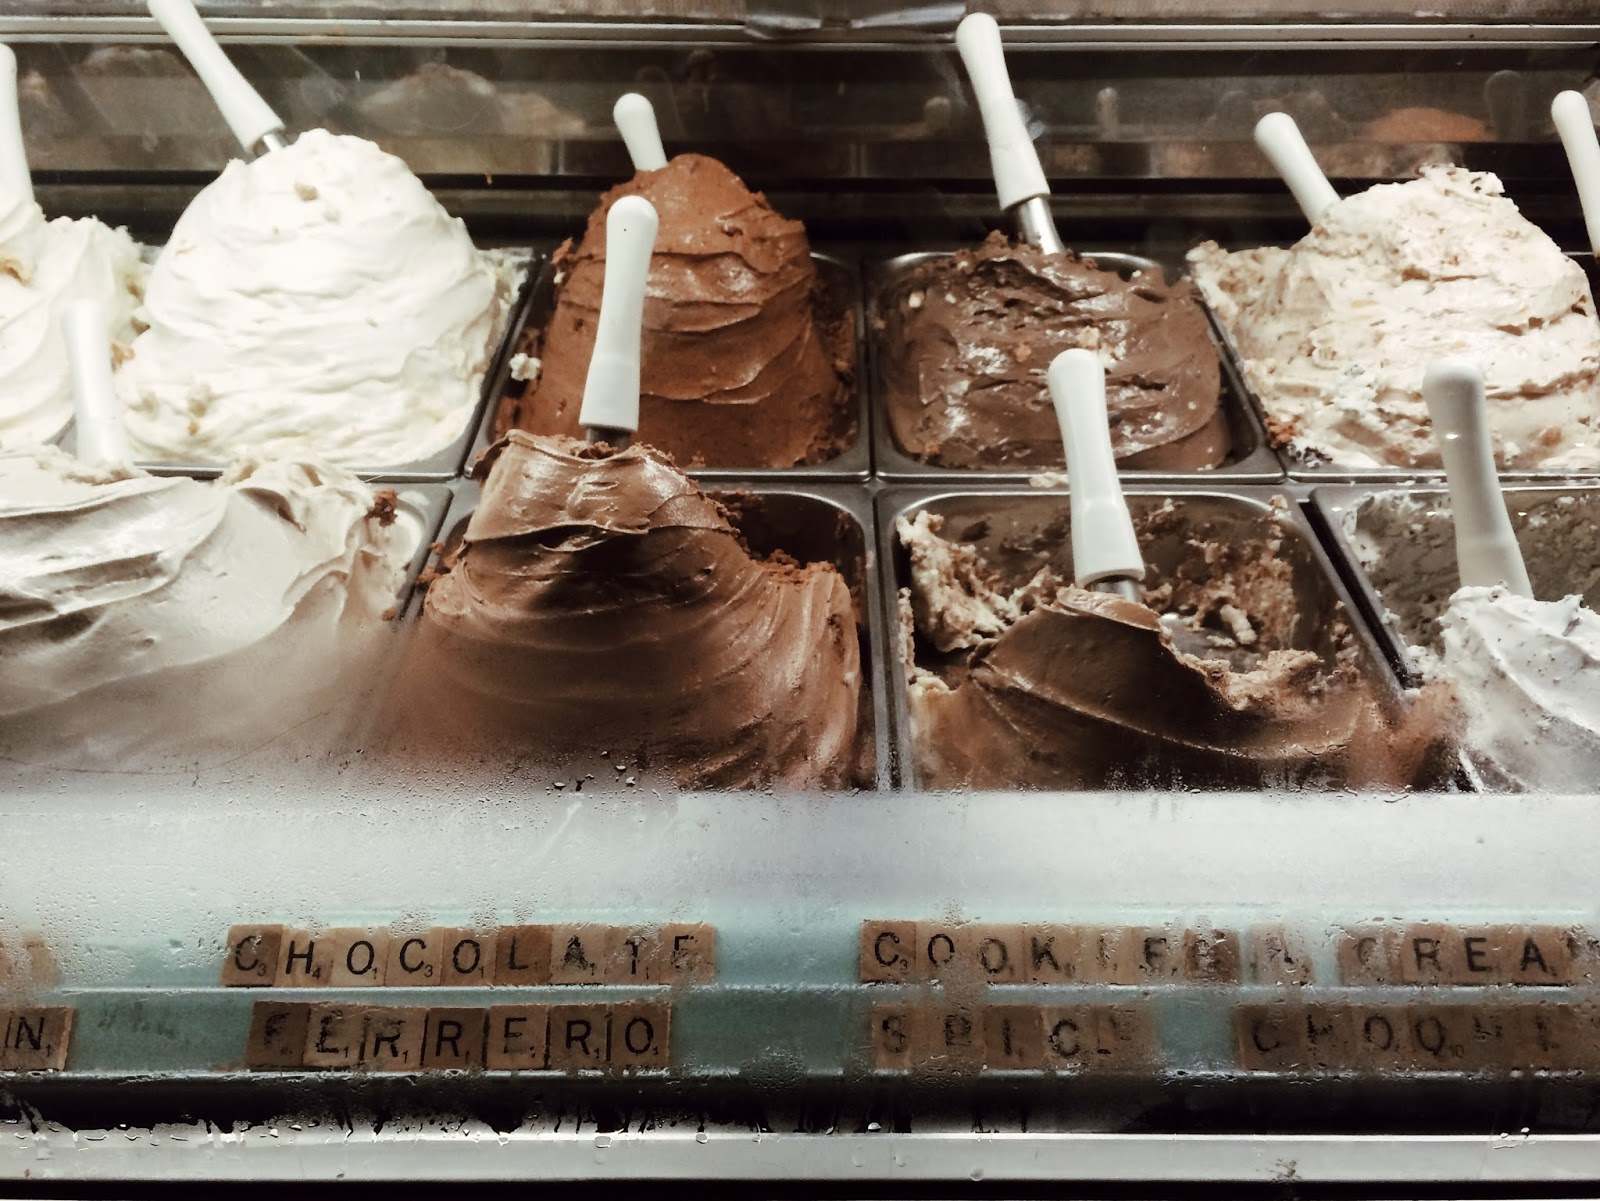 fresco-gelato-new-york-city.jpg